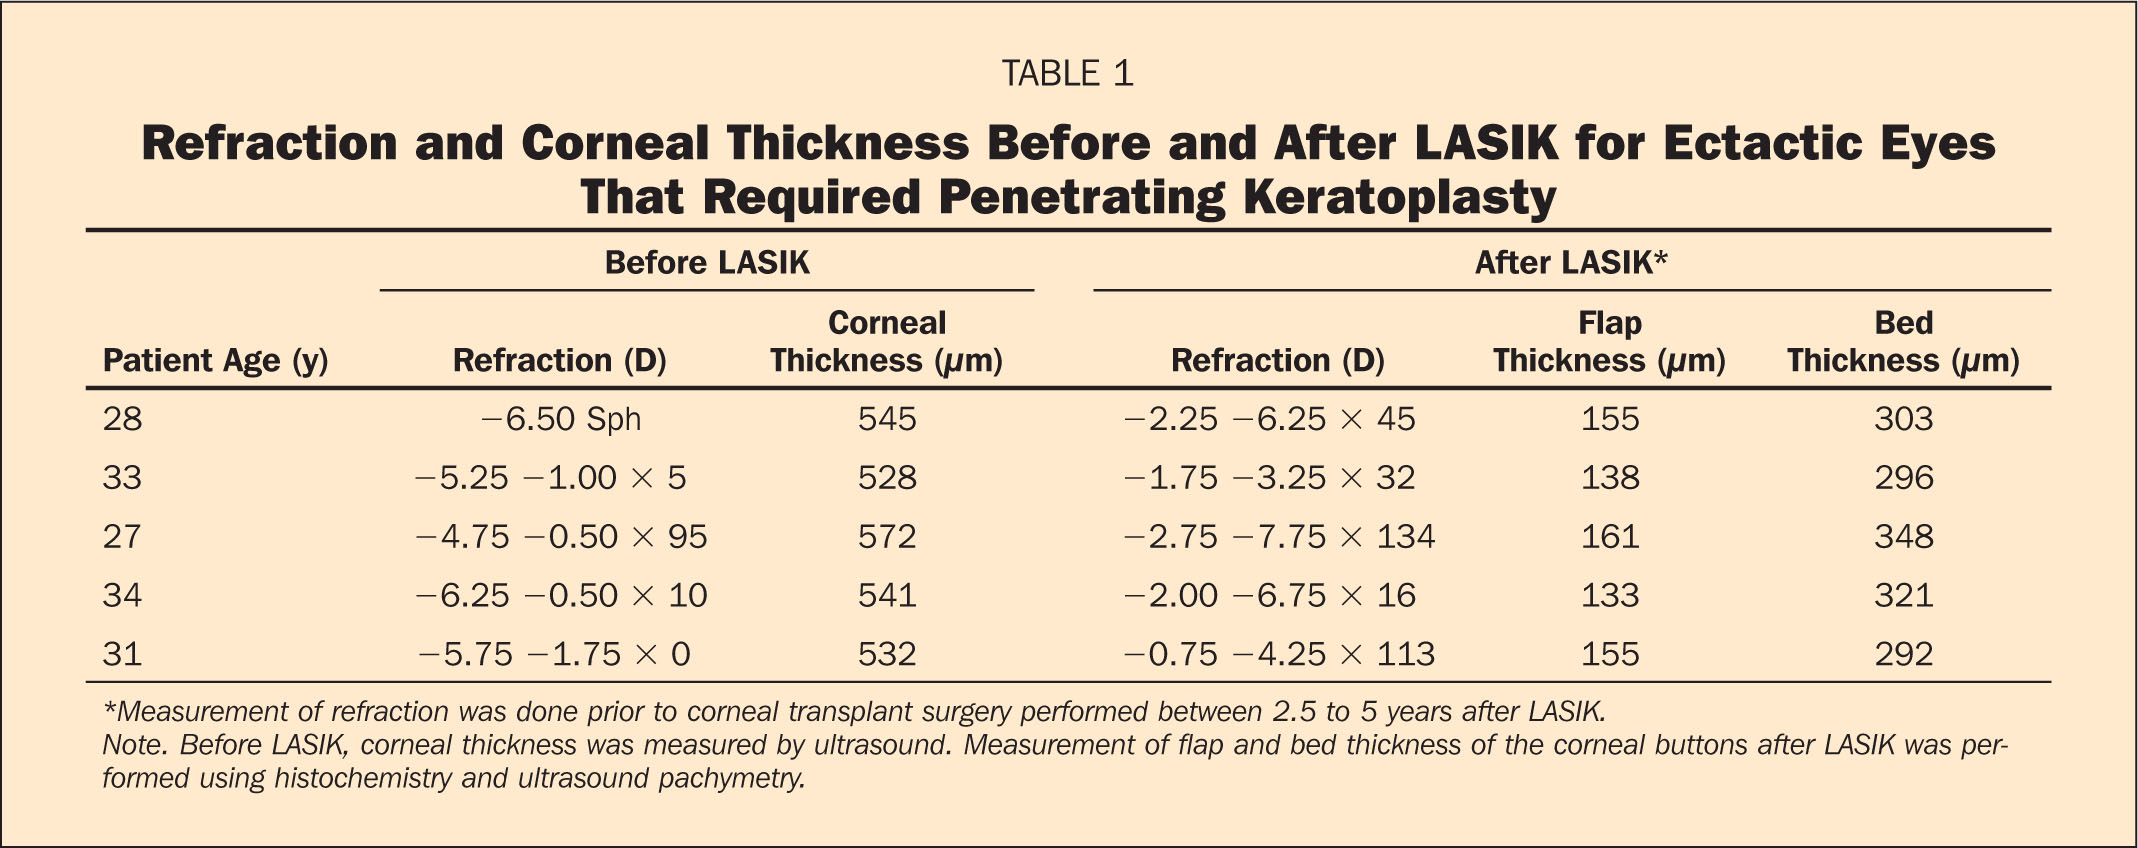 Refraction and Corneal Thickness Before and After LASIK for Ectactic Eyes that Required Penetrating Keratoplasty